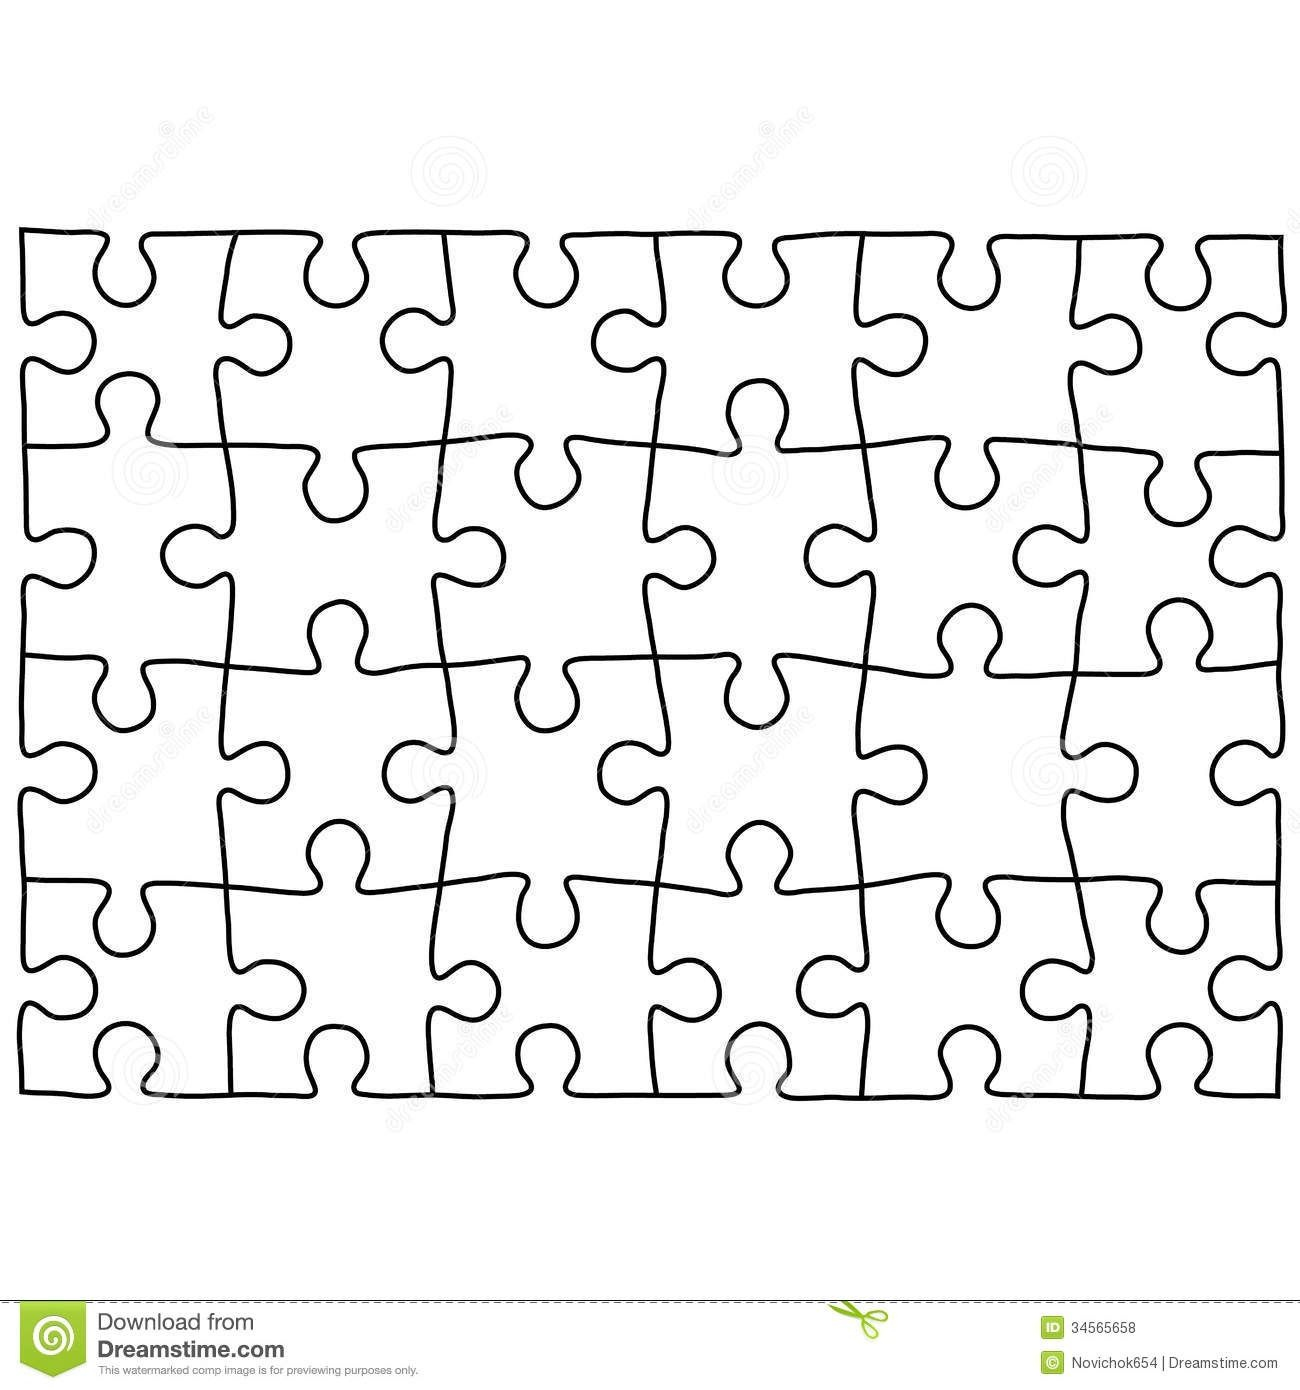 Jigsaw Puzzle Design Template | Free Puzzle Templates 1300.1390 - Jigsaw Puzzle Maker Free Printable